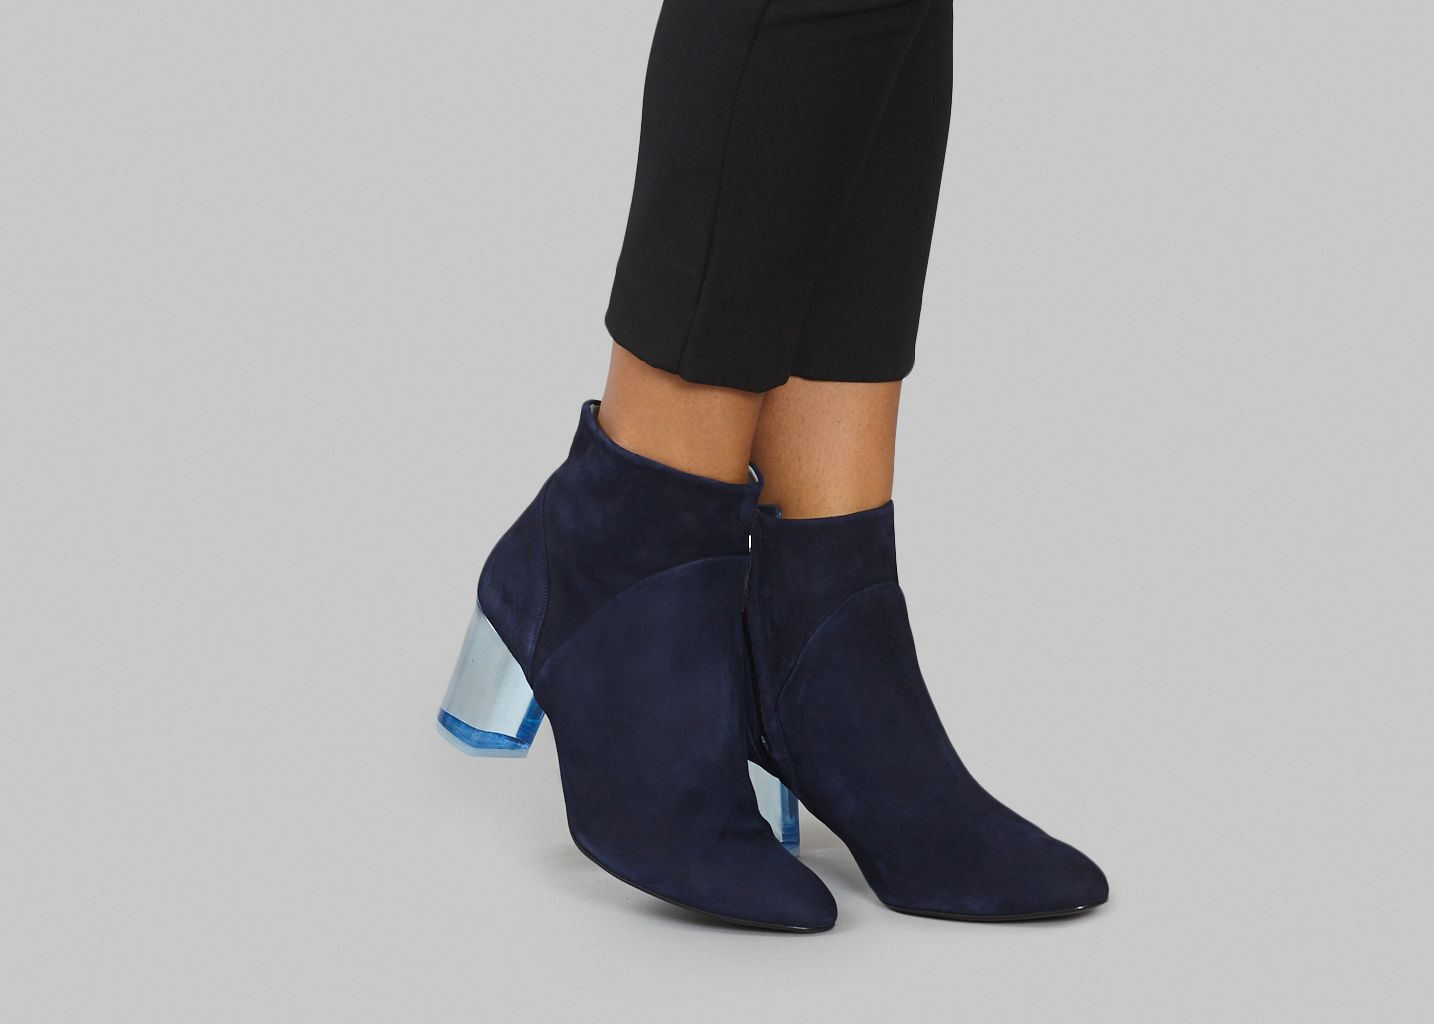 Chaussures - Bottines Apologie